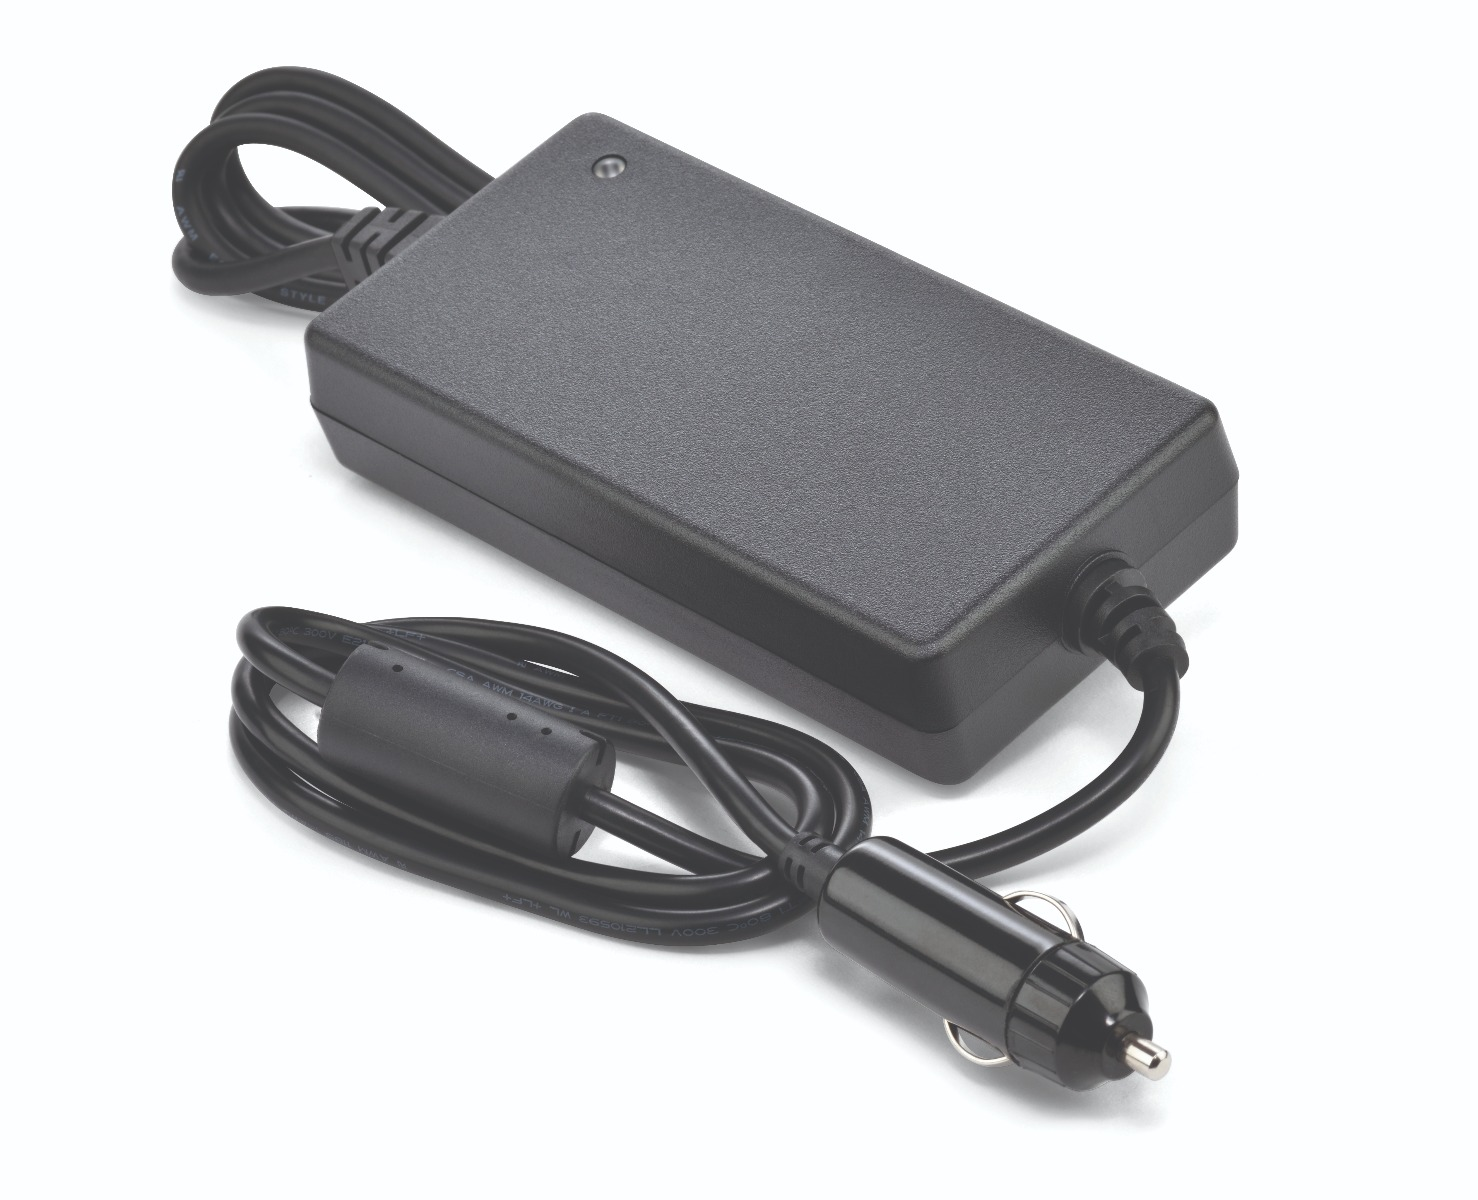 Featured image for: SimplyGo Mini Car Charger (DC Power Supply)